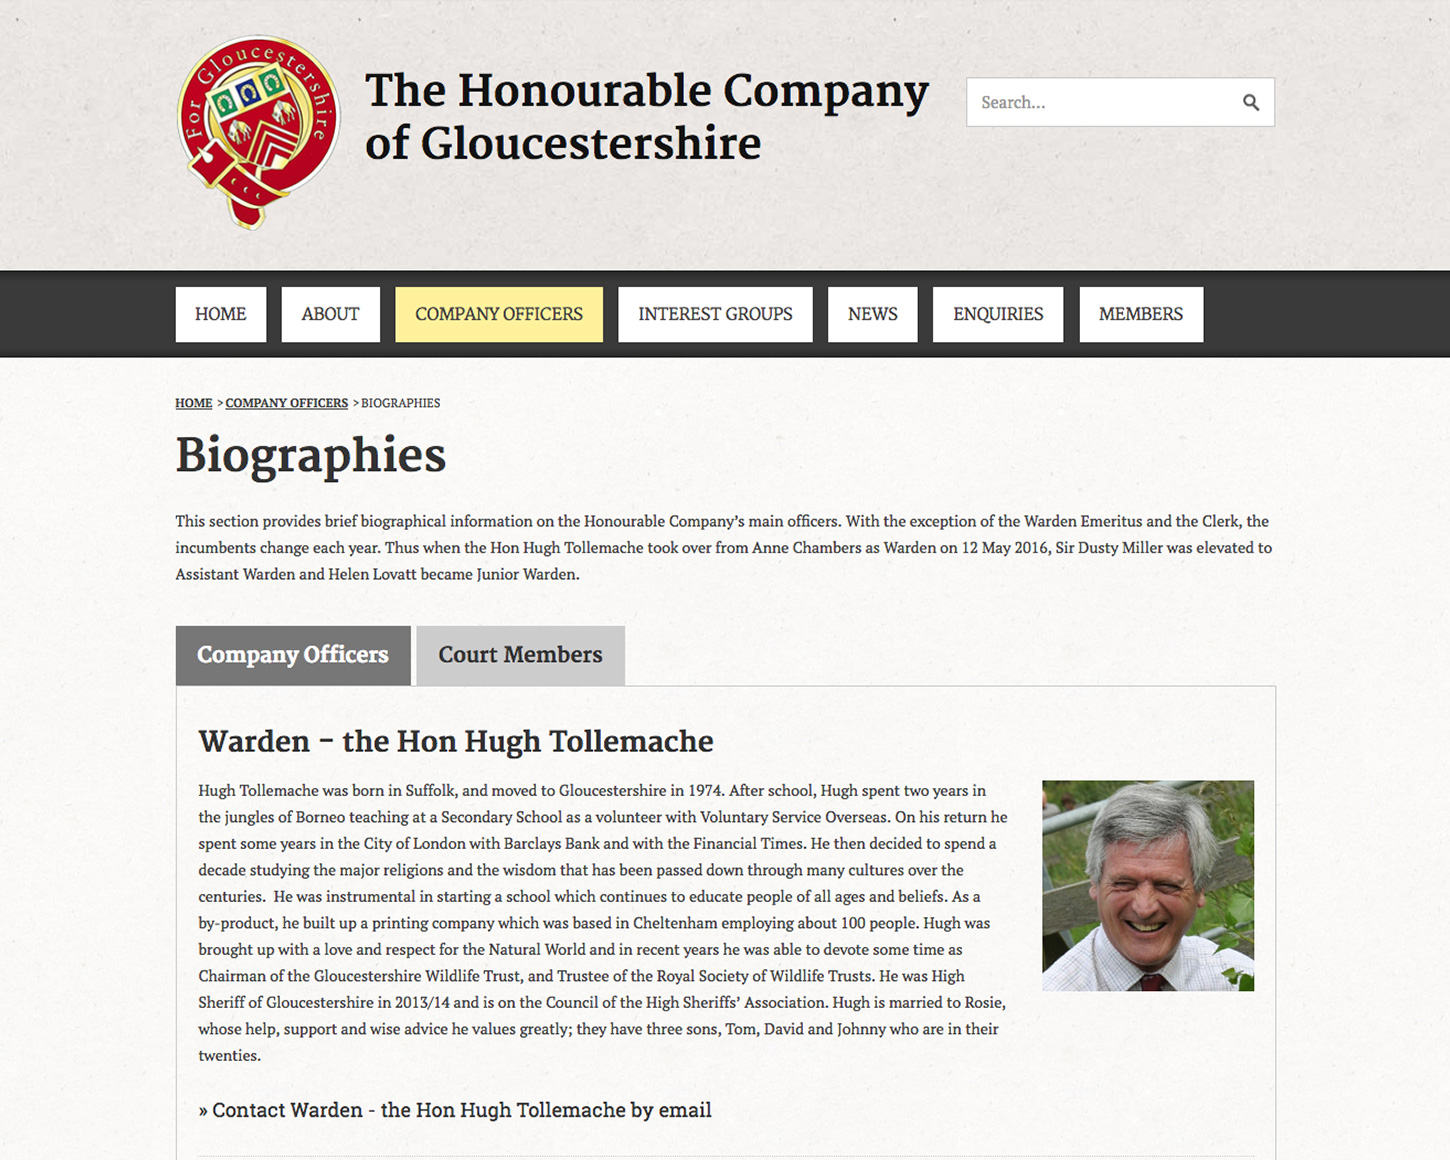 The Honourable Company of Gloucestershire website